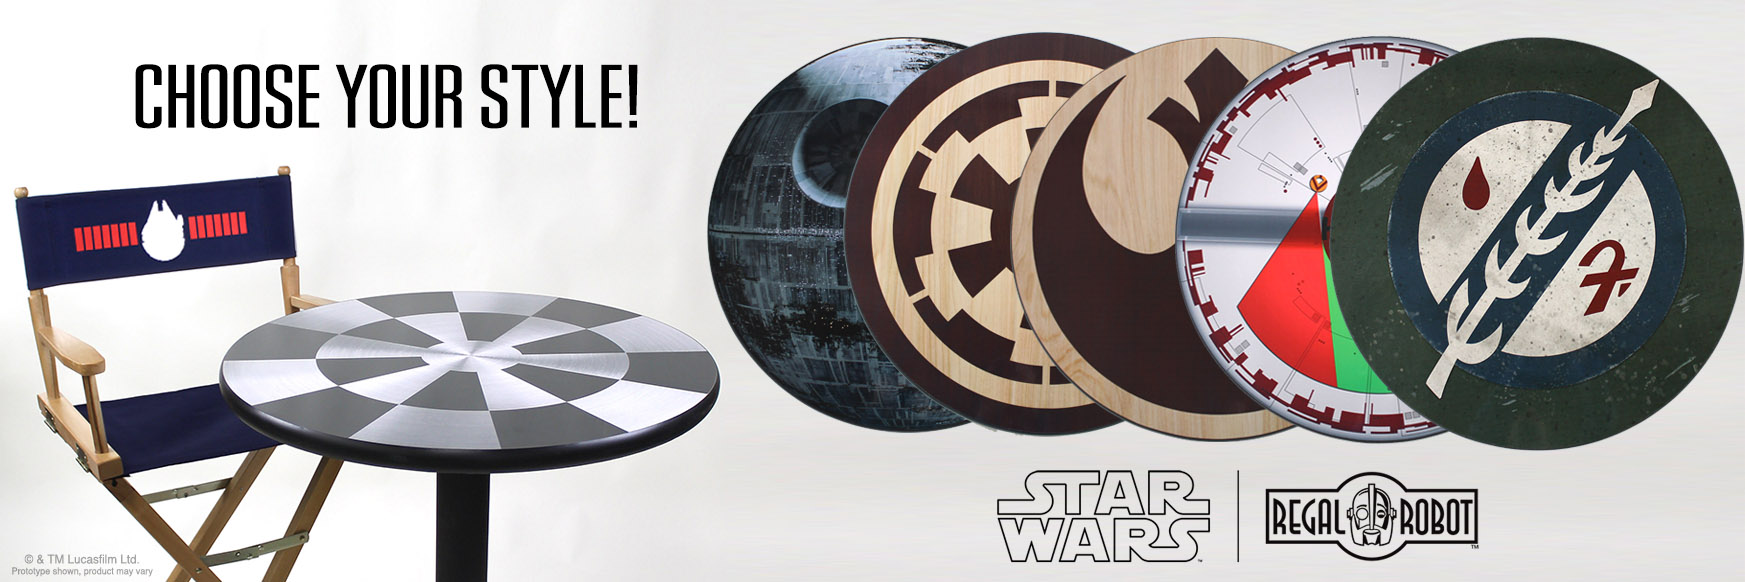 pub, bar and cafe tables with Star Wars graphics